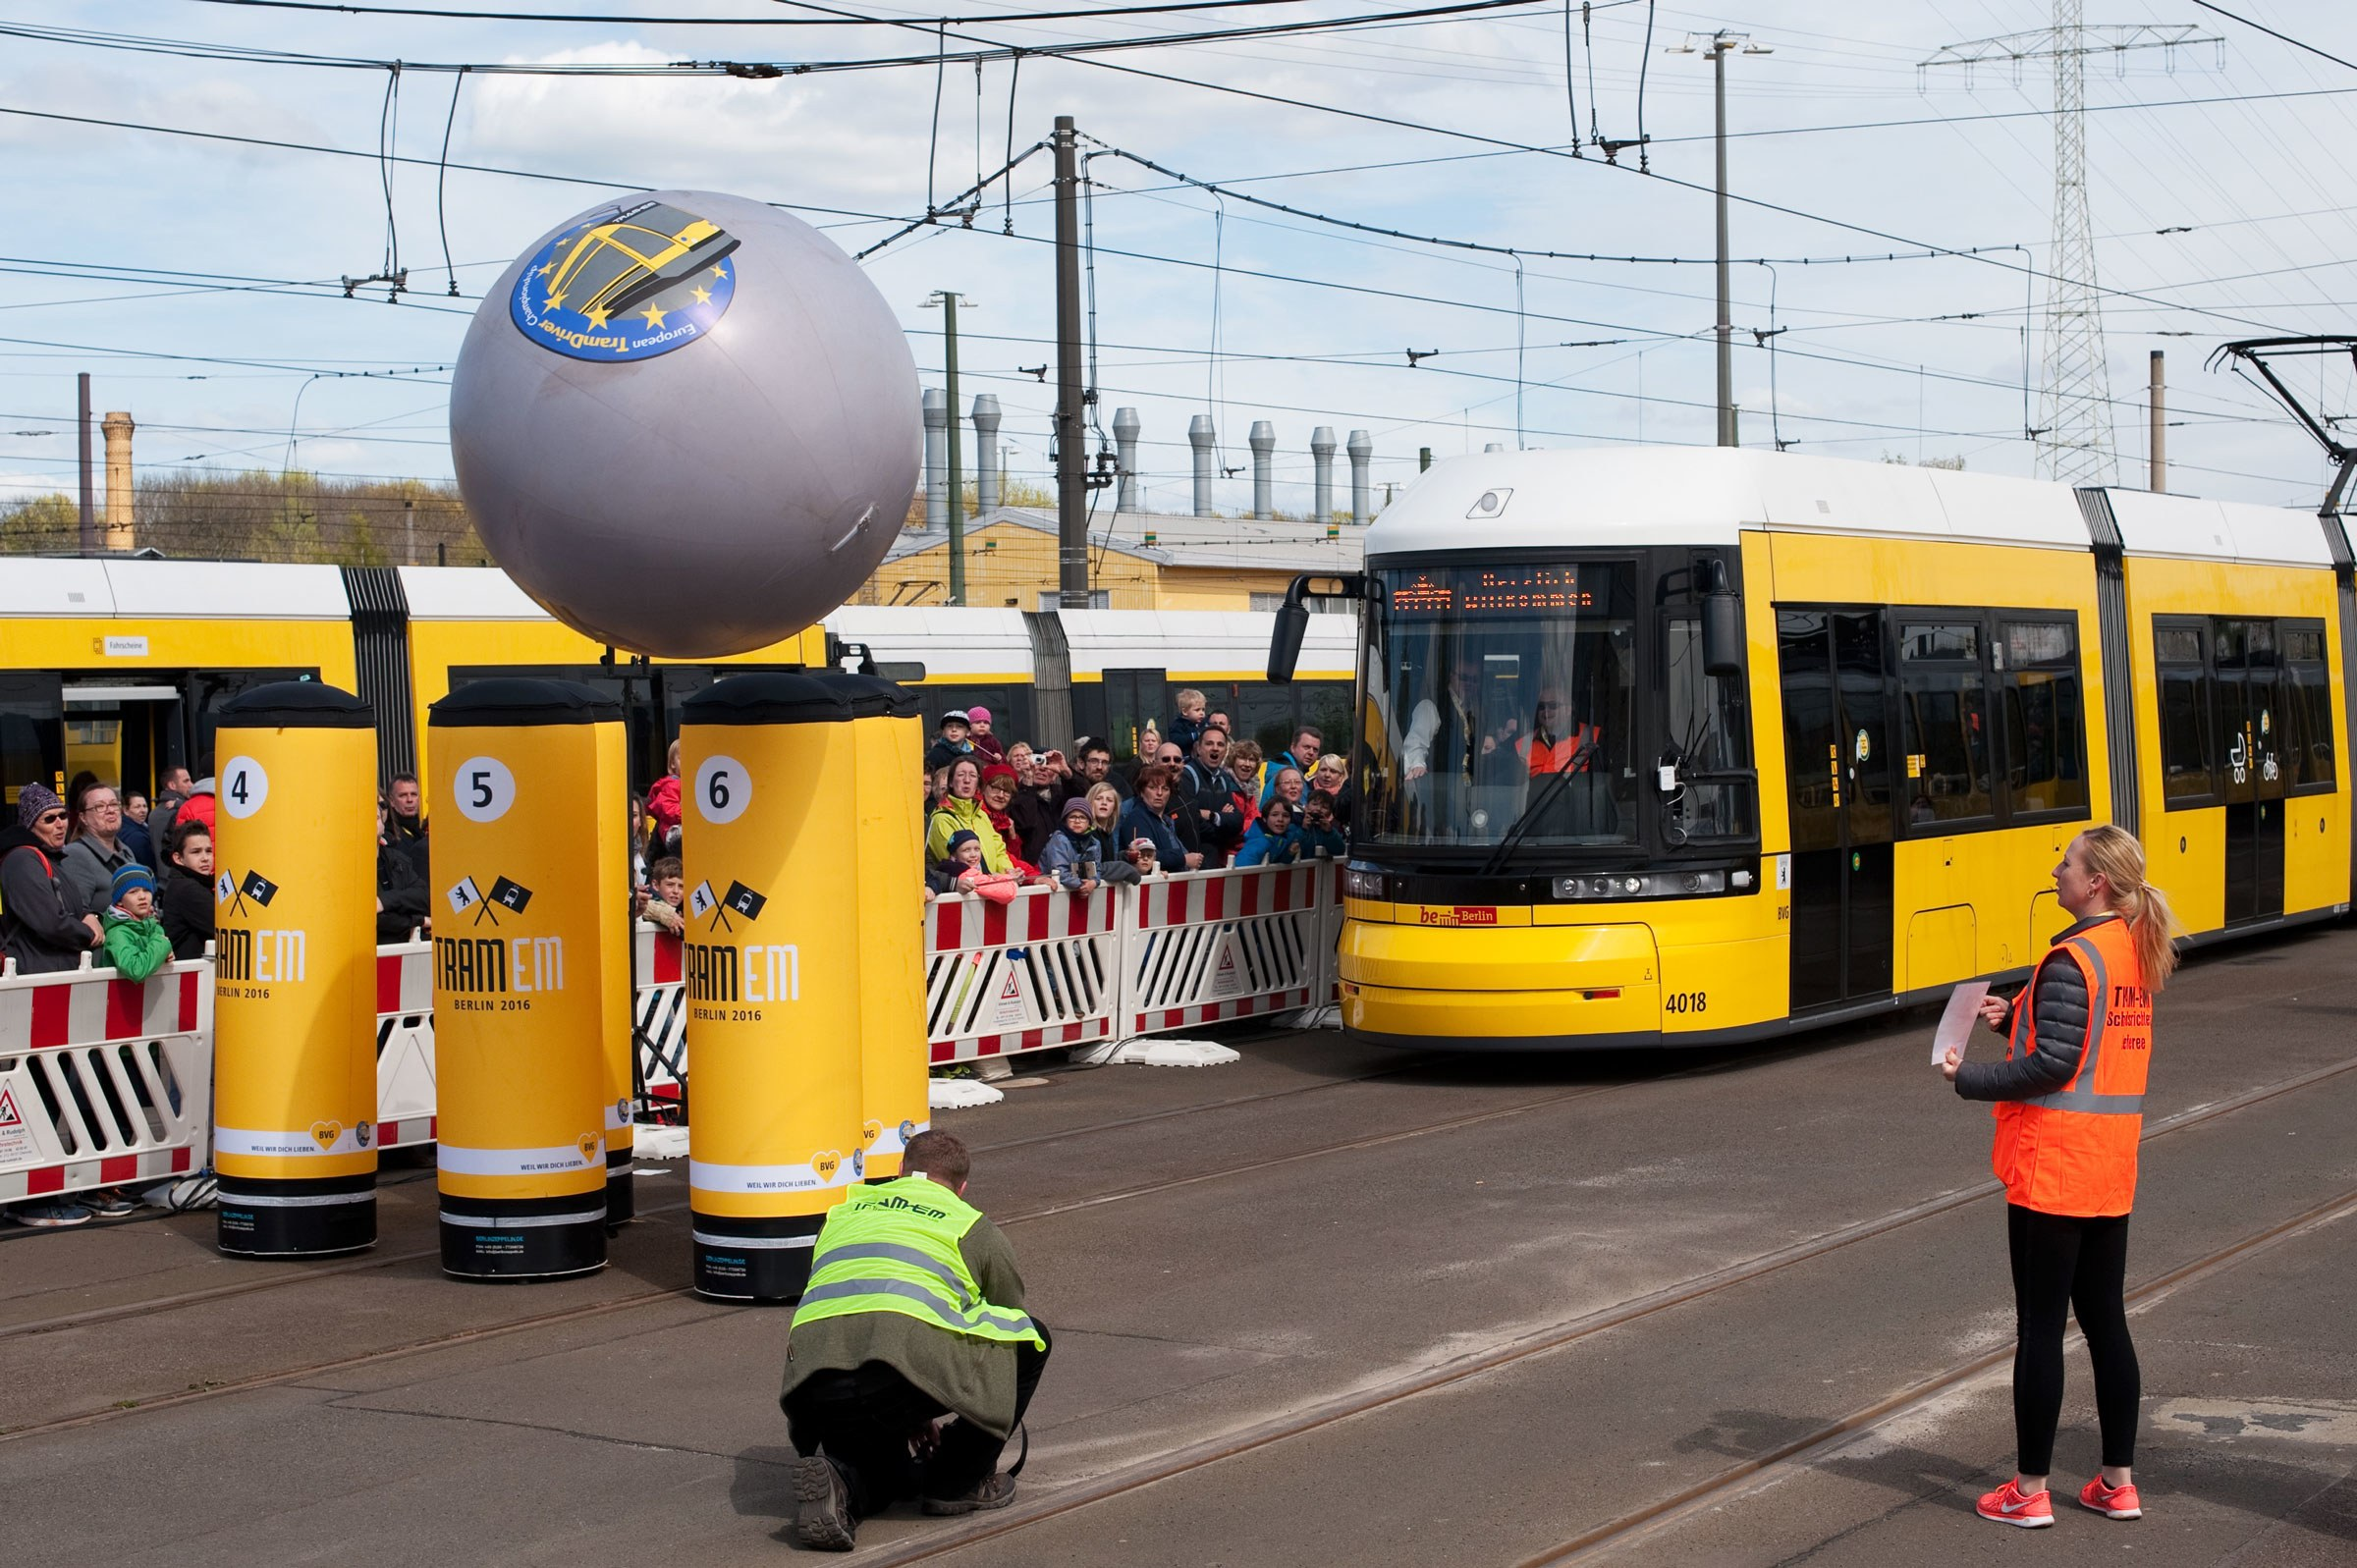 tram+bowling+is+an+actual+sport.+let%27s+look+at+the+physics